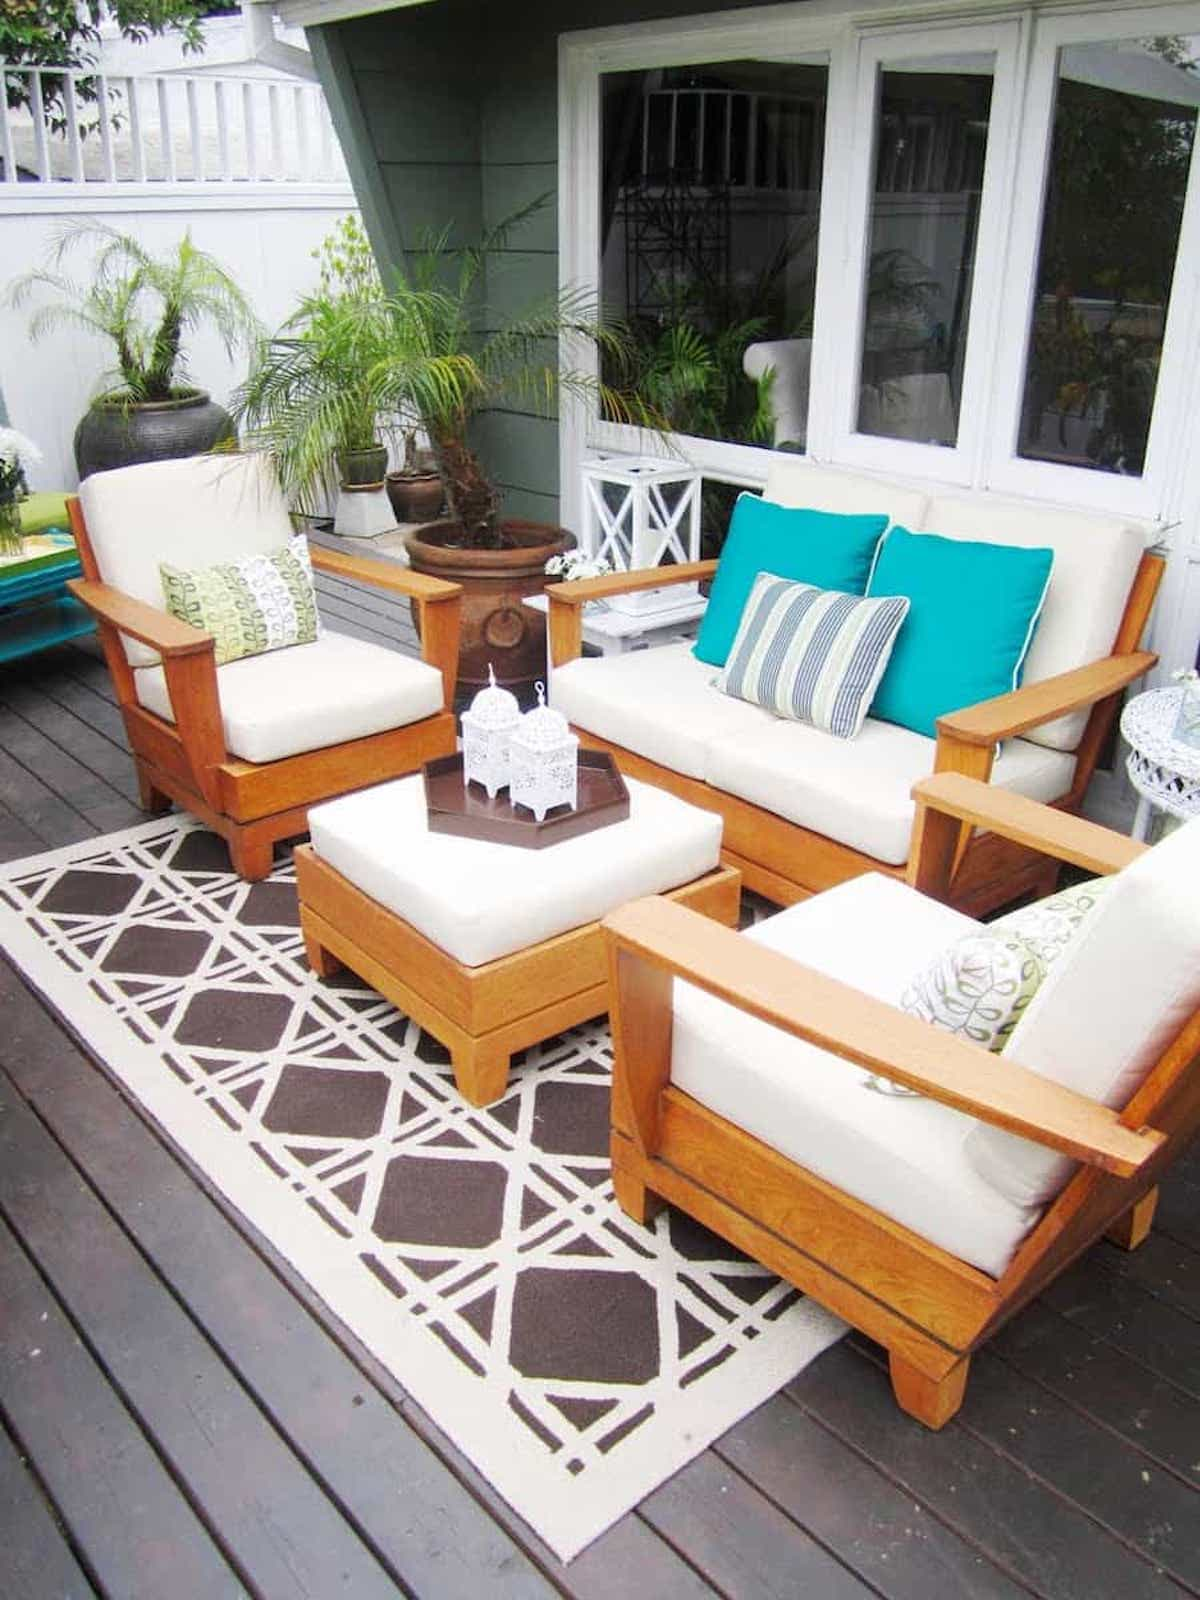 Geometric Pattern Outdoor Rugs For Patios Area (Image 10 of 15)